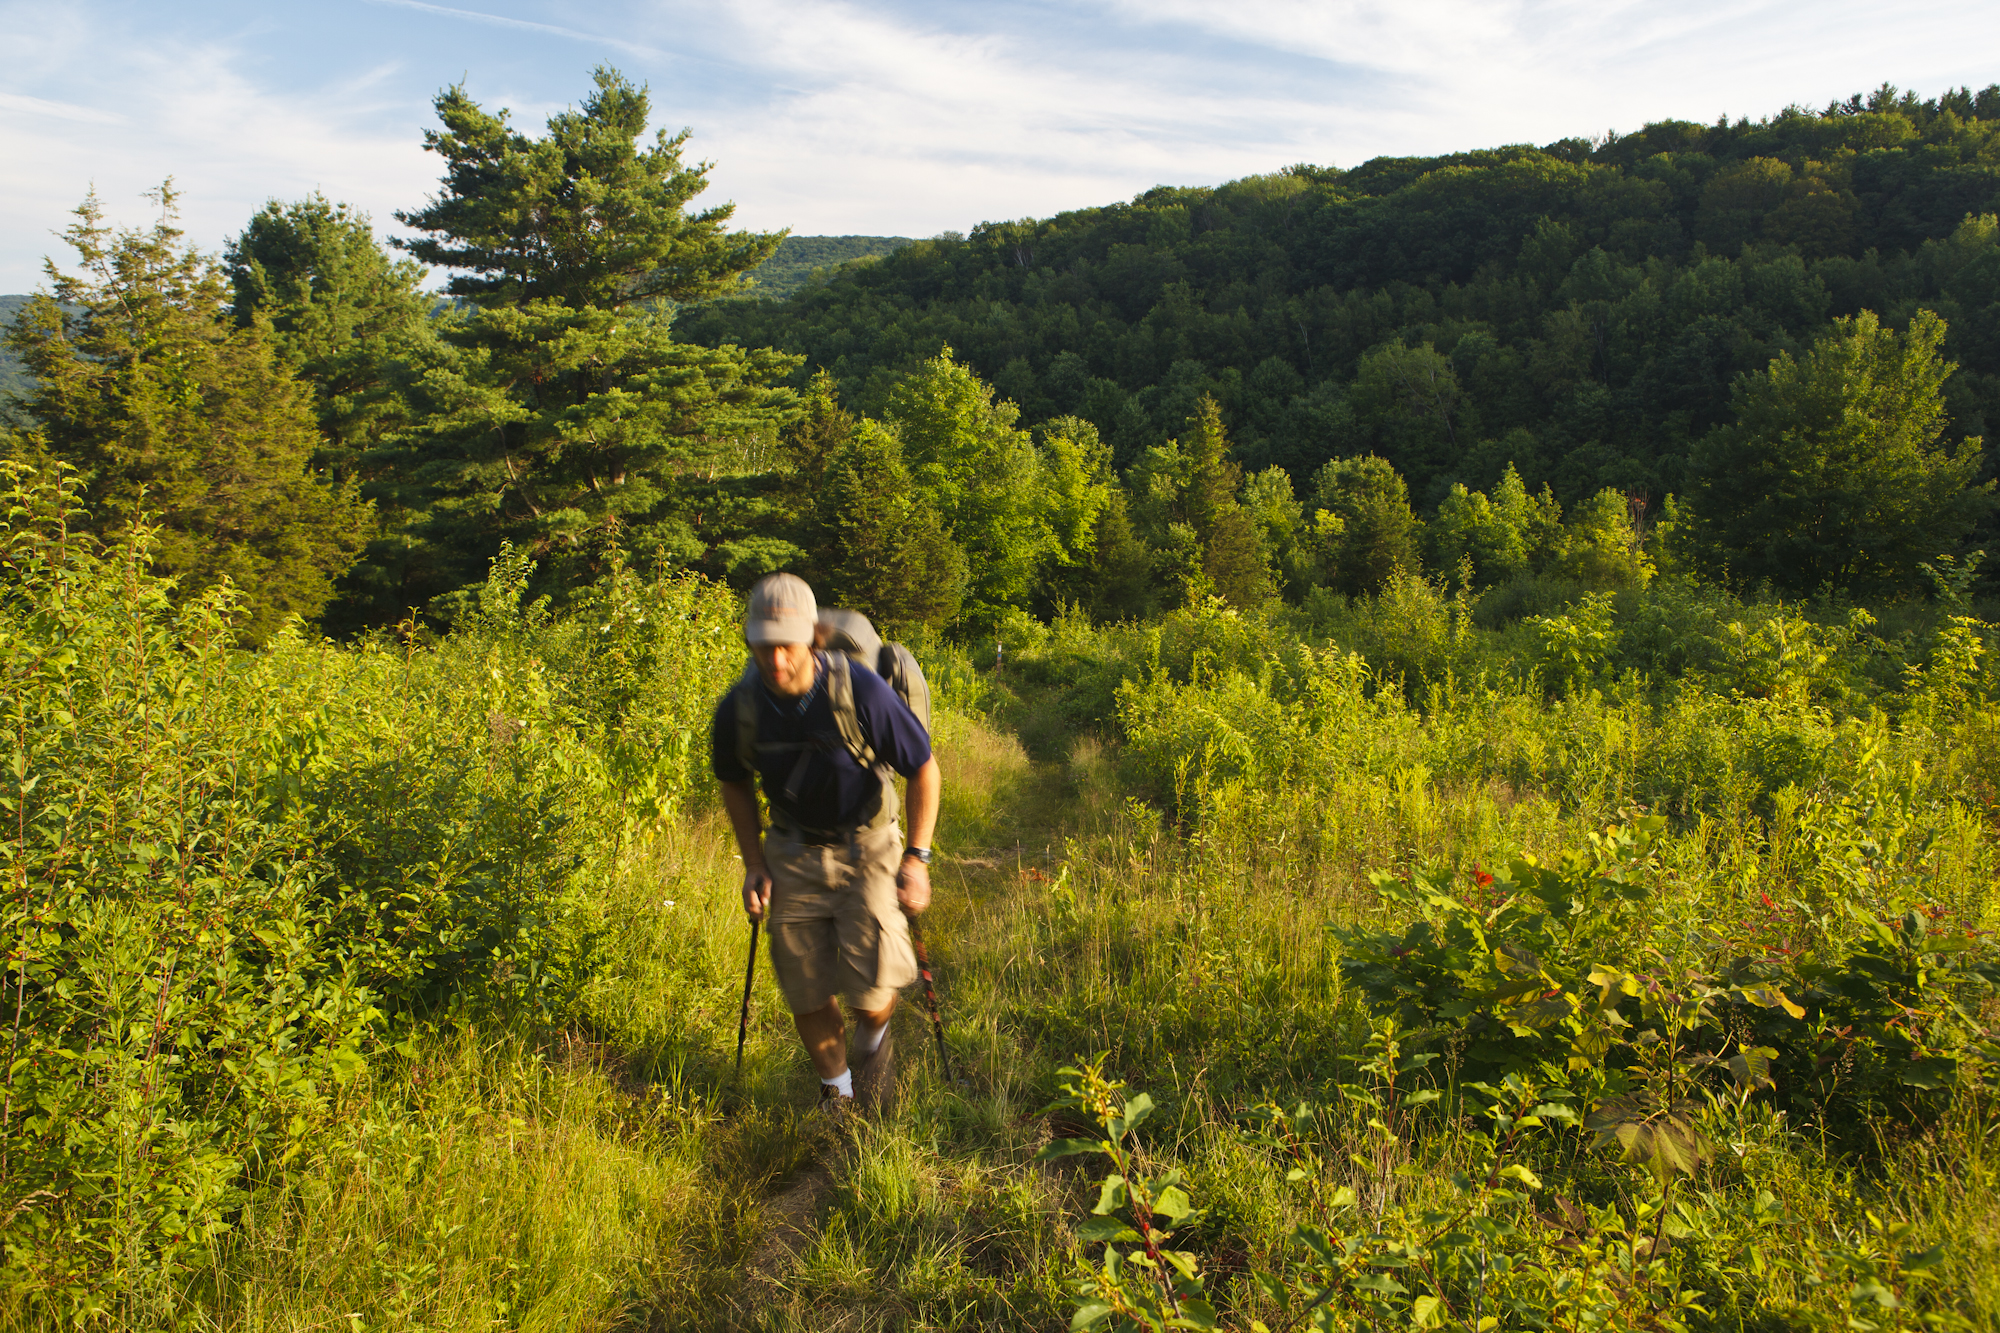 A man hiking the Appalachian Trail on Tyringham Cobble, Tyringham, Massachussets.